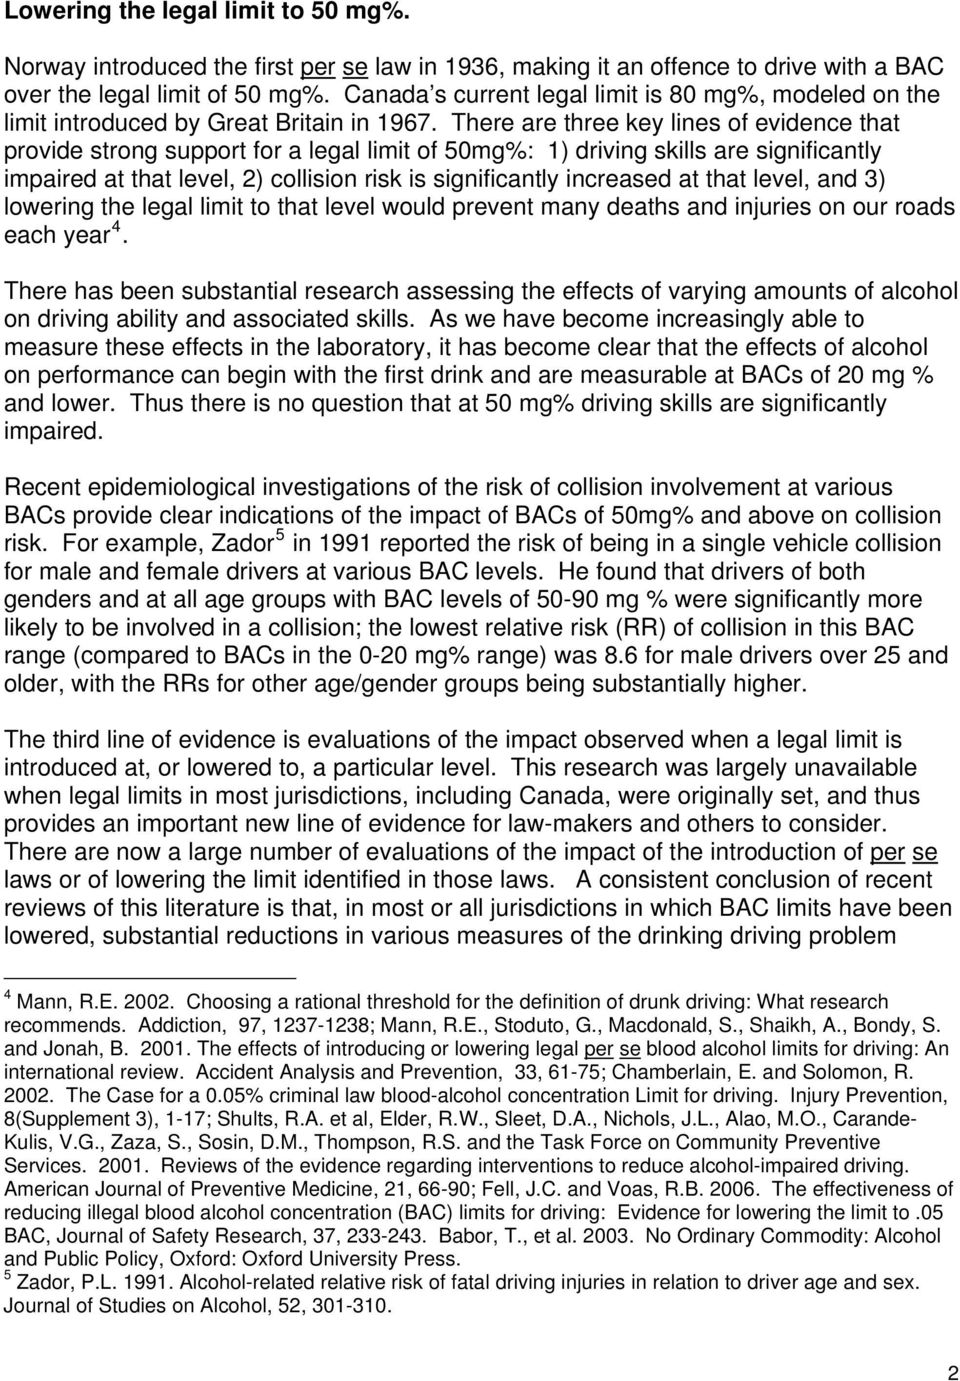 There are three key lines of evidence that provide strong support for a legal limit of 50mg%: 1) driving skills are significantly impaired at that level, 2) collision risk is significantly increased